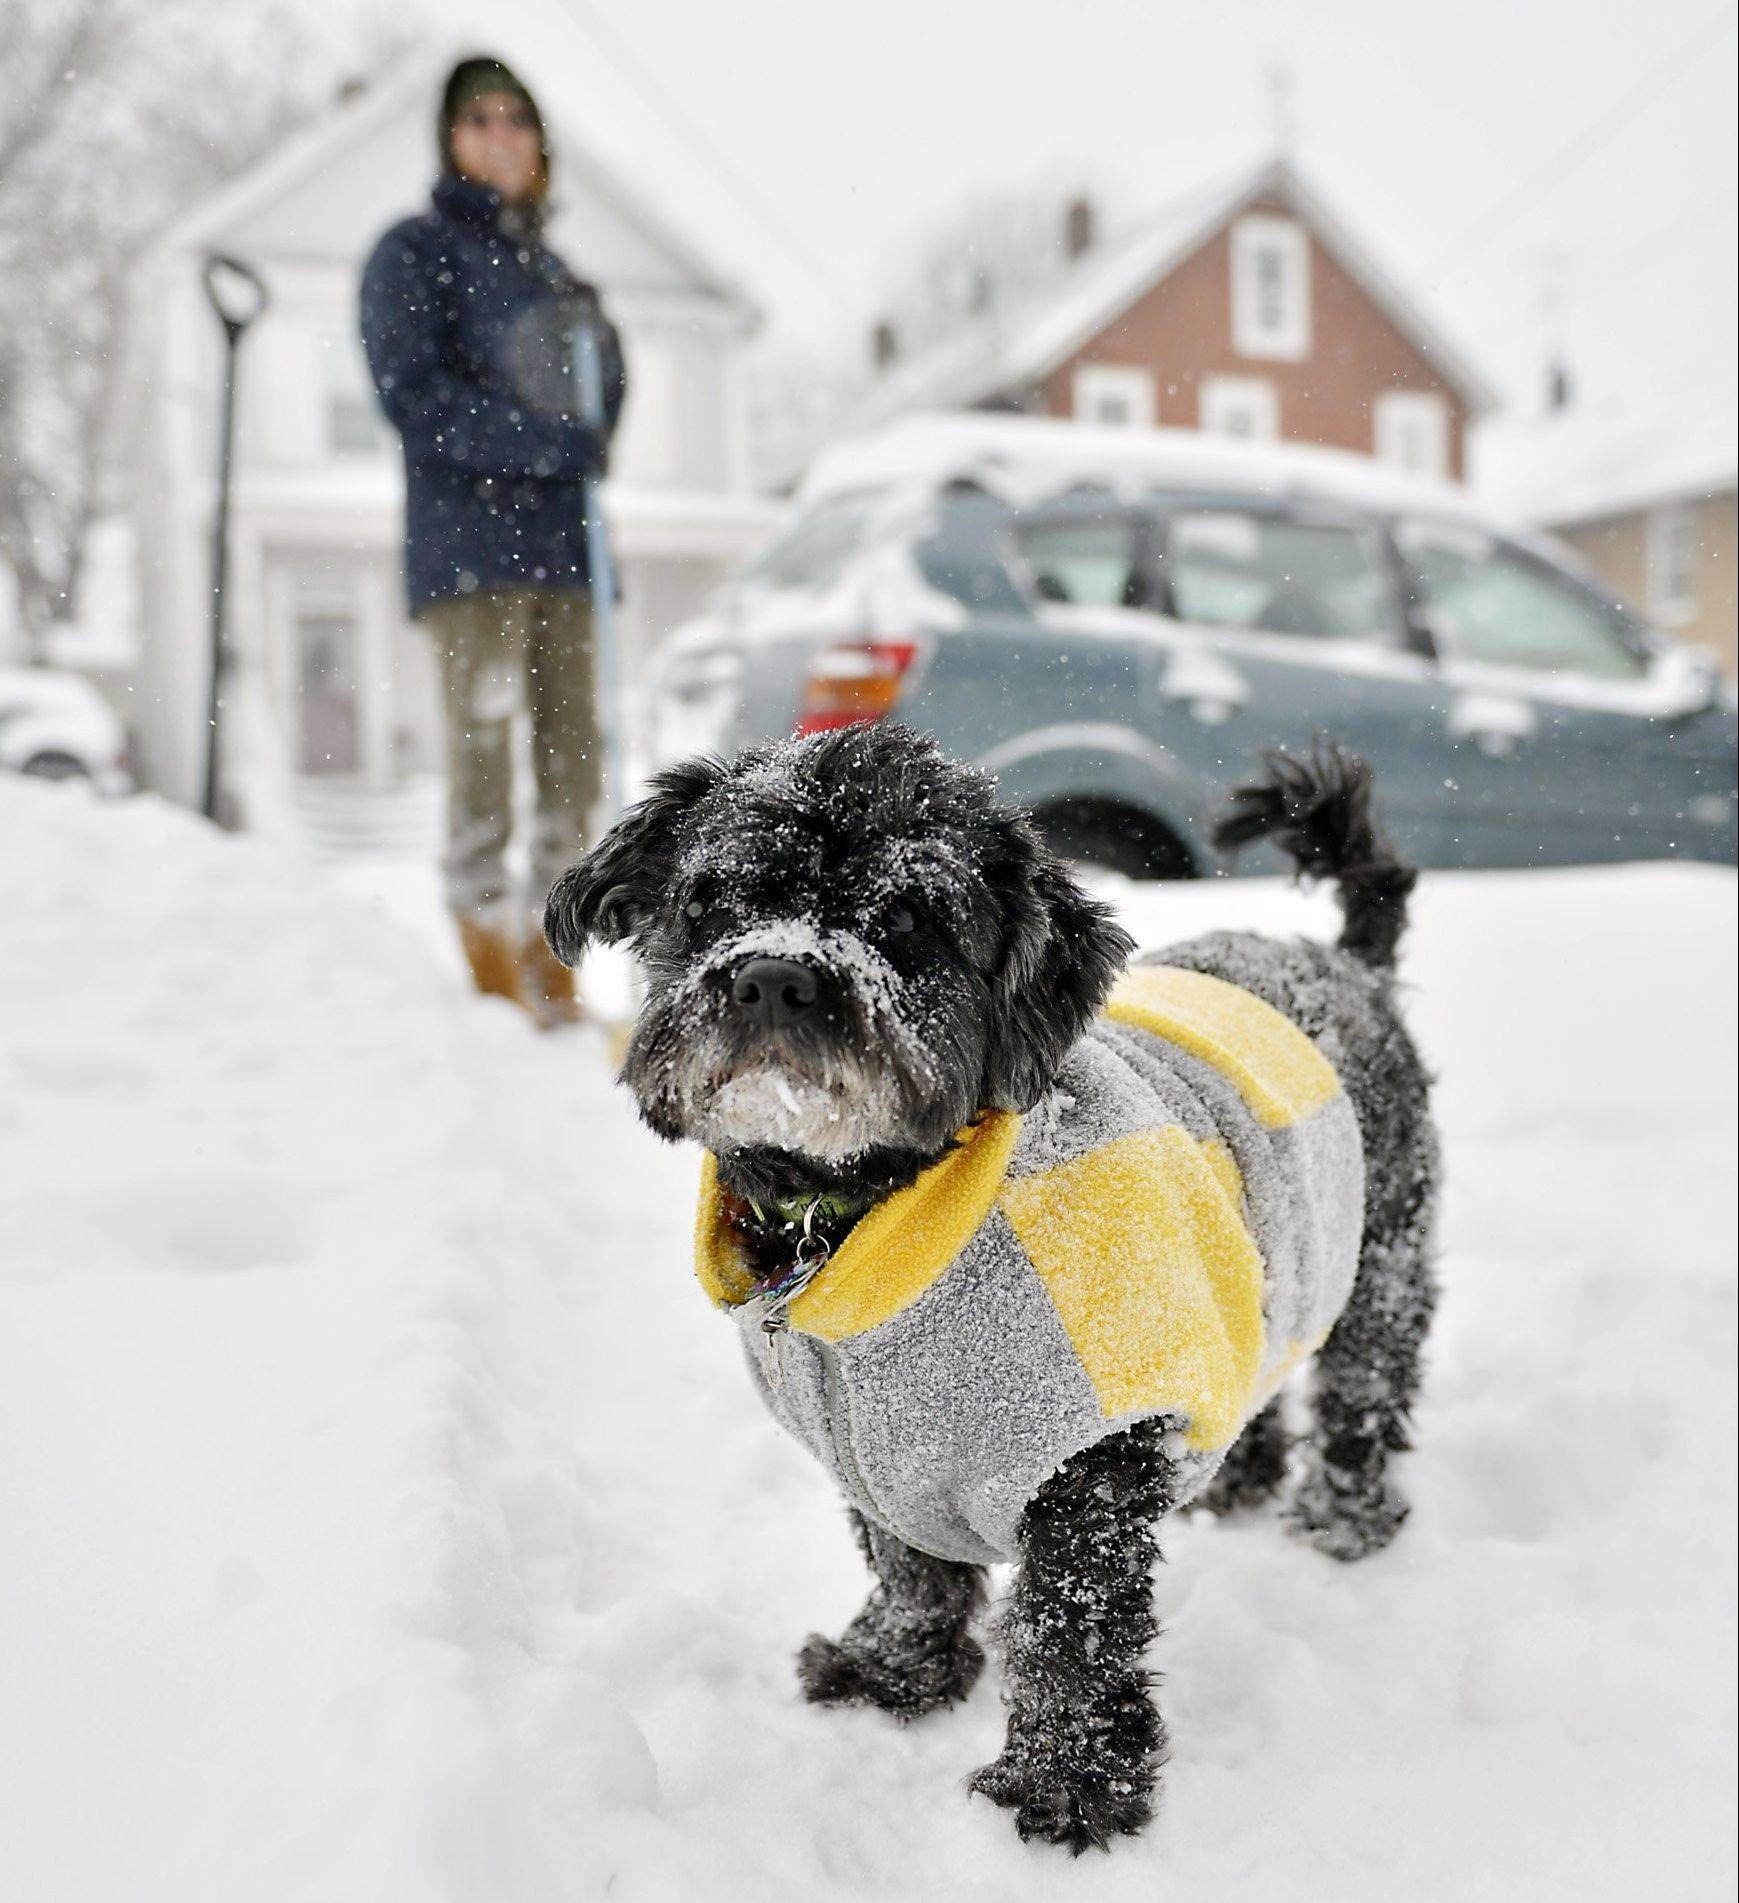 Snow sticks to Nikko�s fur and sweater as the 10-year-old Havanese dog plays in the snow with his owner, Laurie Edwards, at rear, outside their house in Erie, Pa., Thursday. A winter storm promising significant snowfall, strong winds and frigid air bore down Thursday on the Northeast.